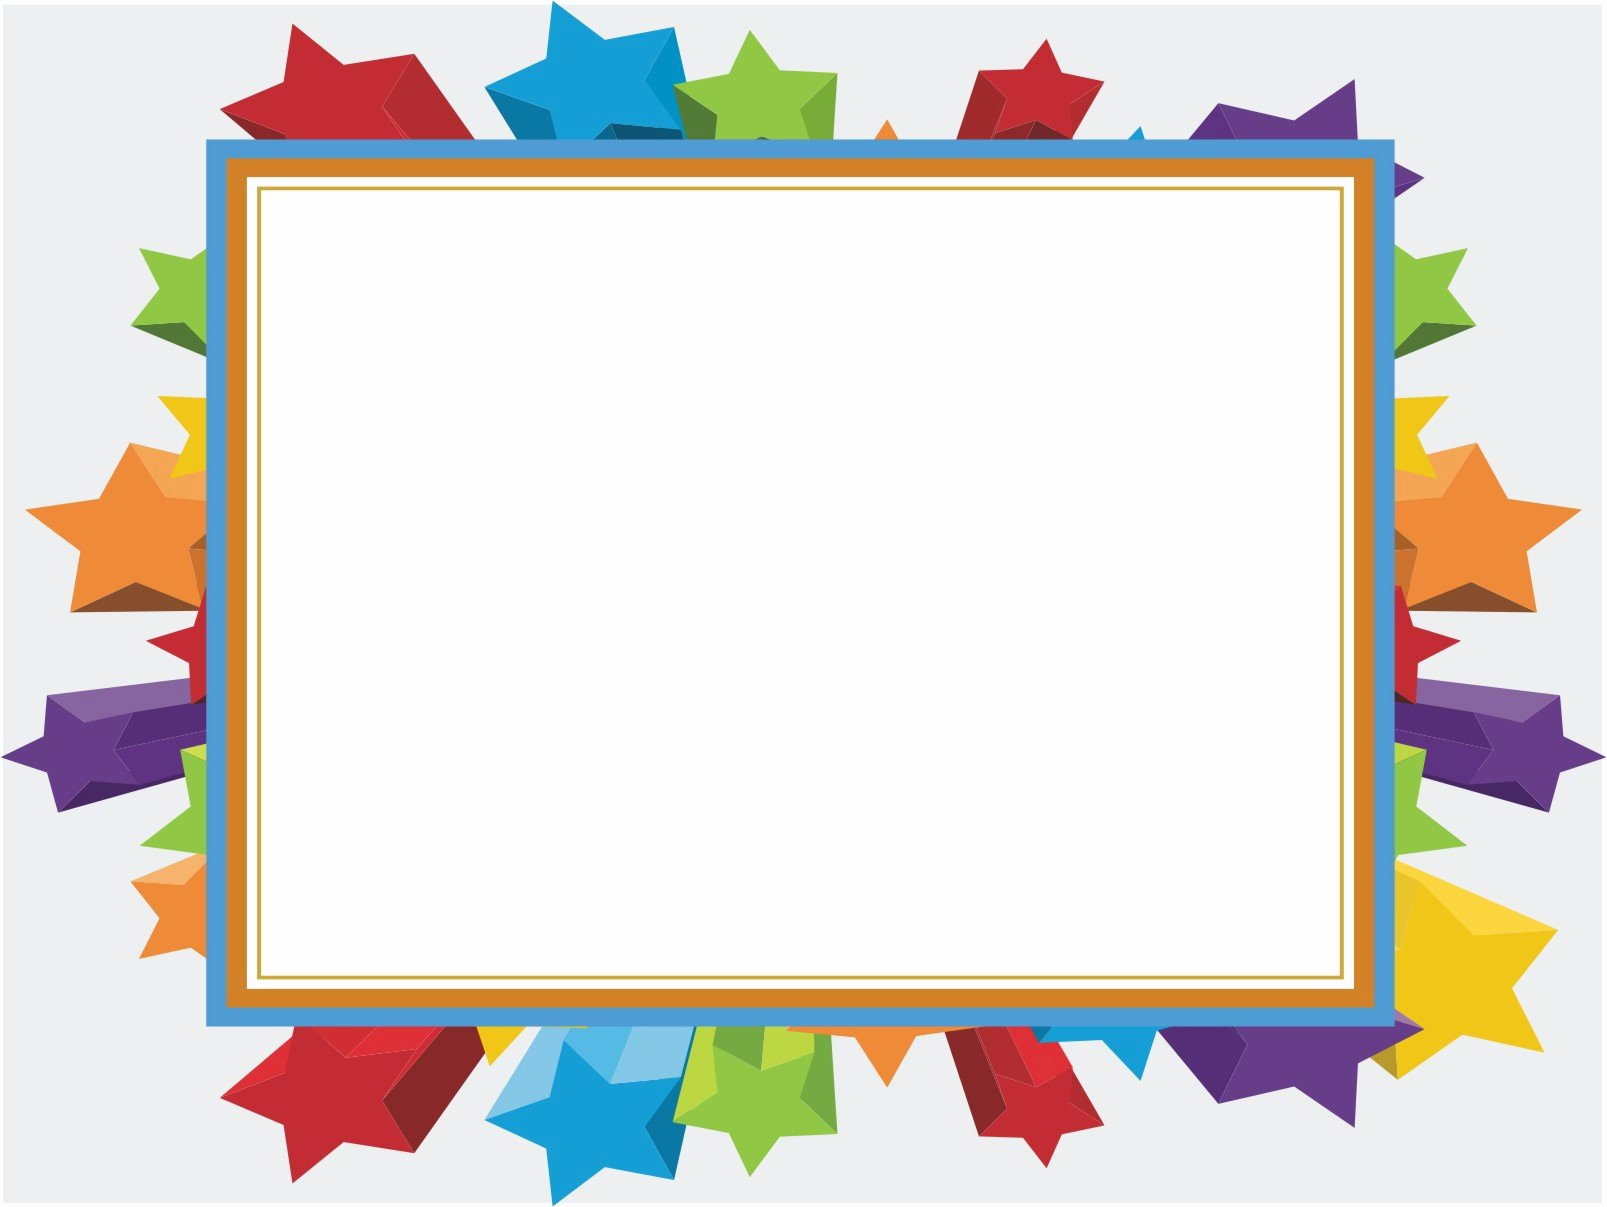 Free Powerpoint Templates for Kids Unique Ppt Wallpaper for Children Wallpapersafari